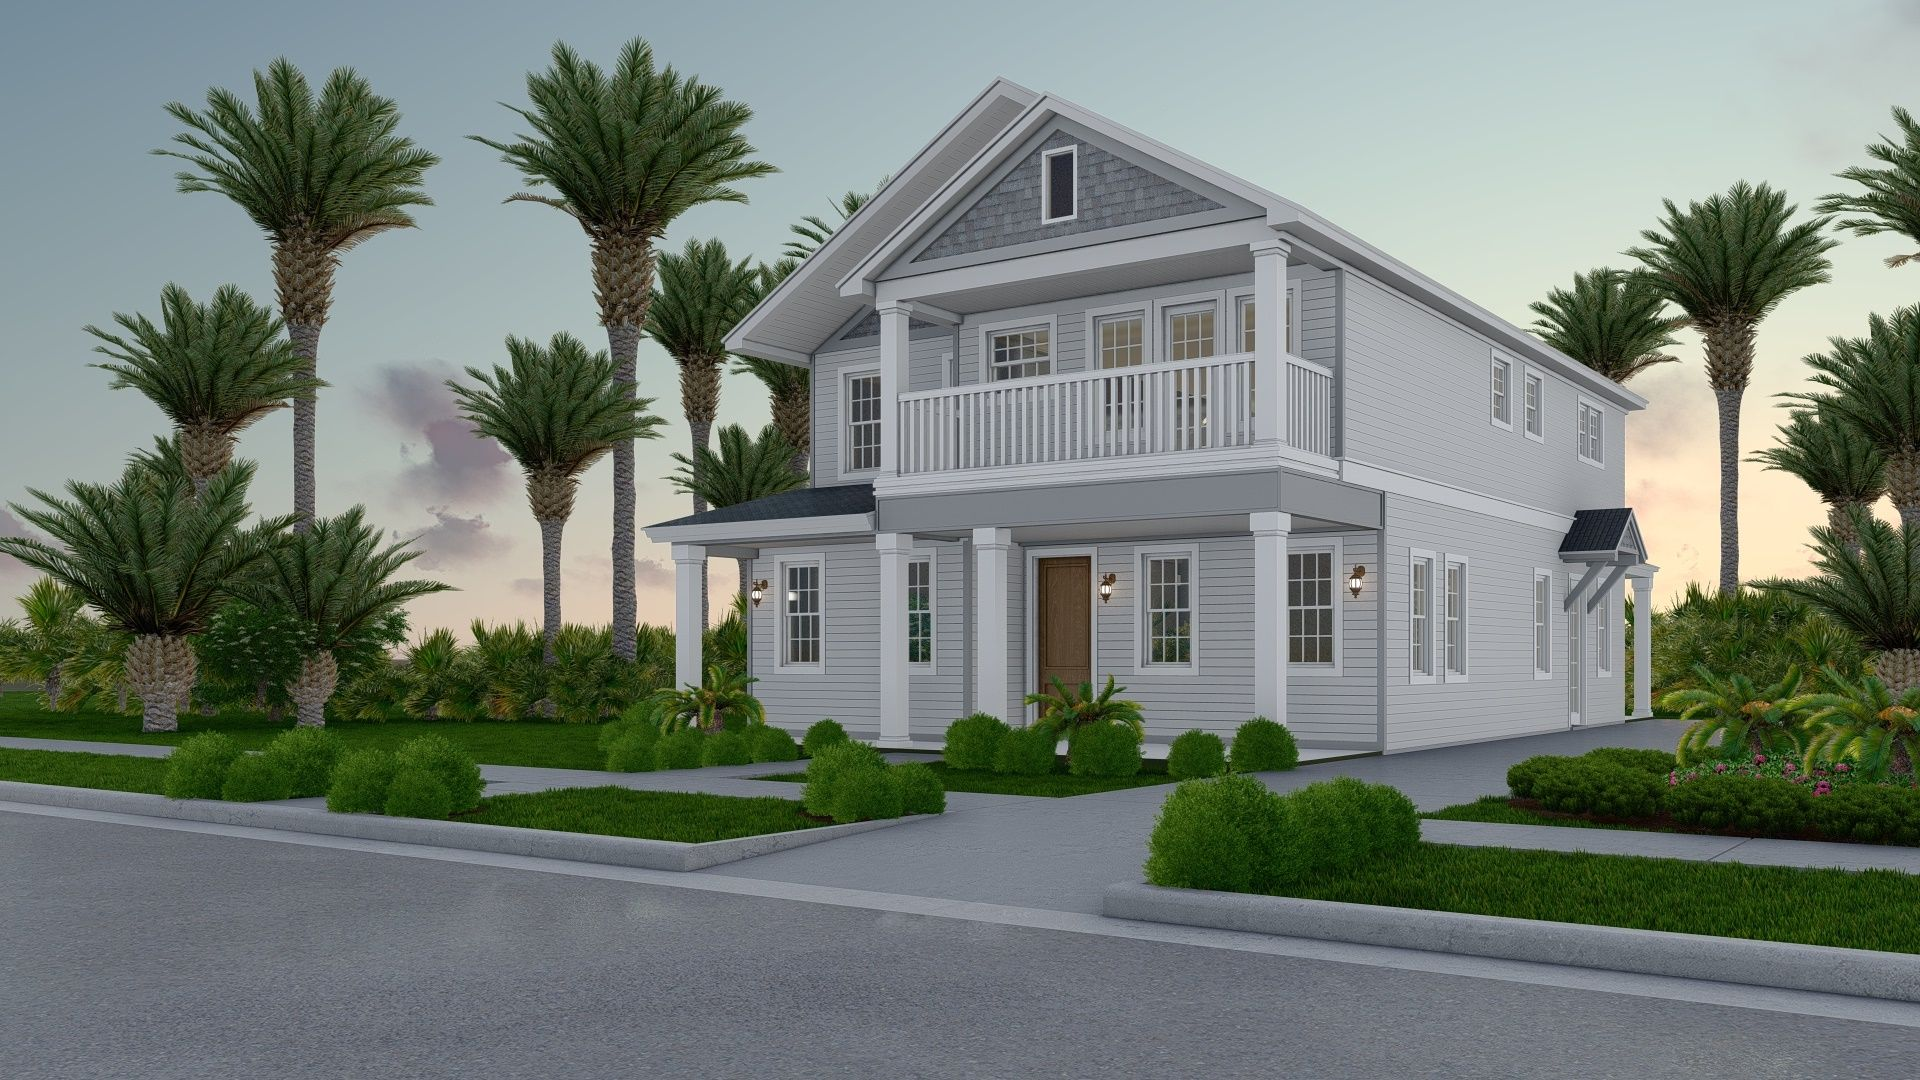 Attention Builders Looking For A Spec Home Design Lovely 30 Ft Wide 3bed 3ba Plans Available Immediately Dream House Plans Home Building Design Huge Houses